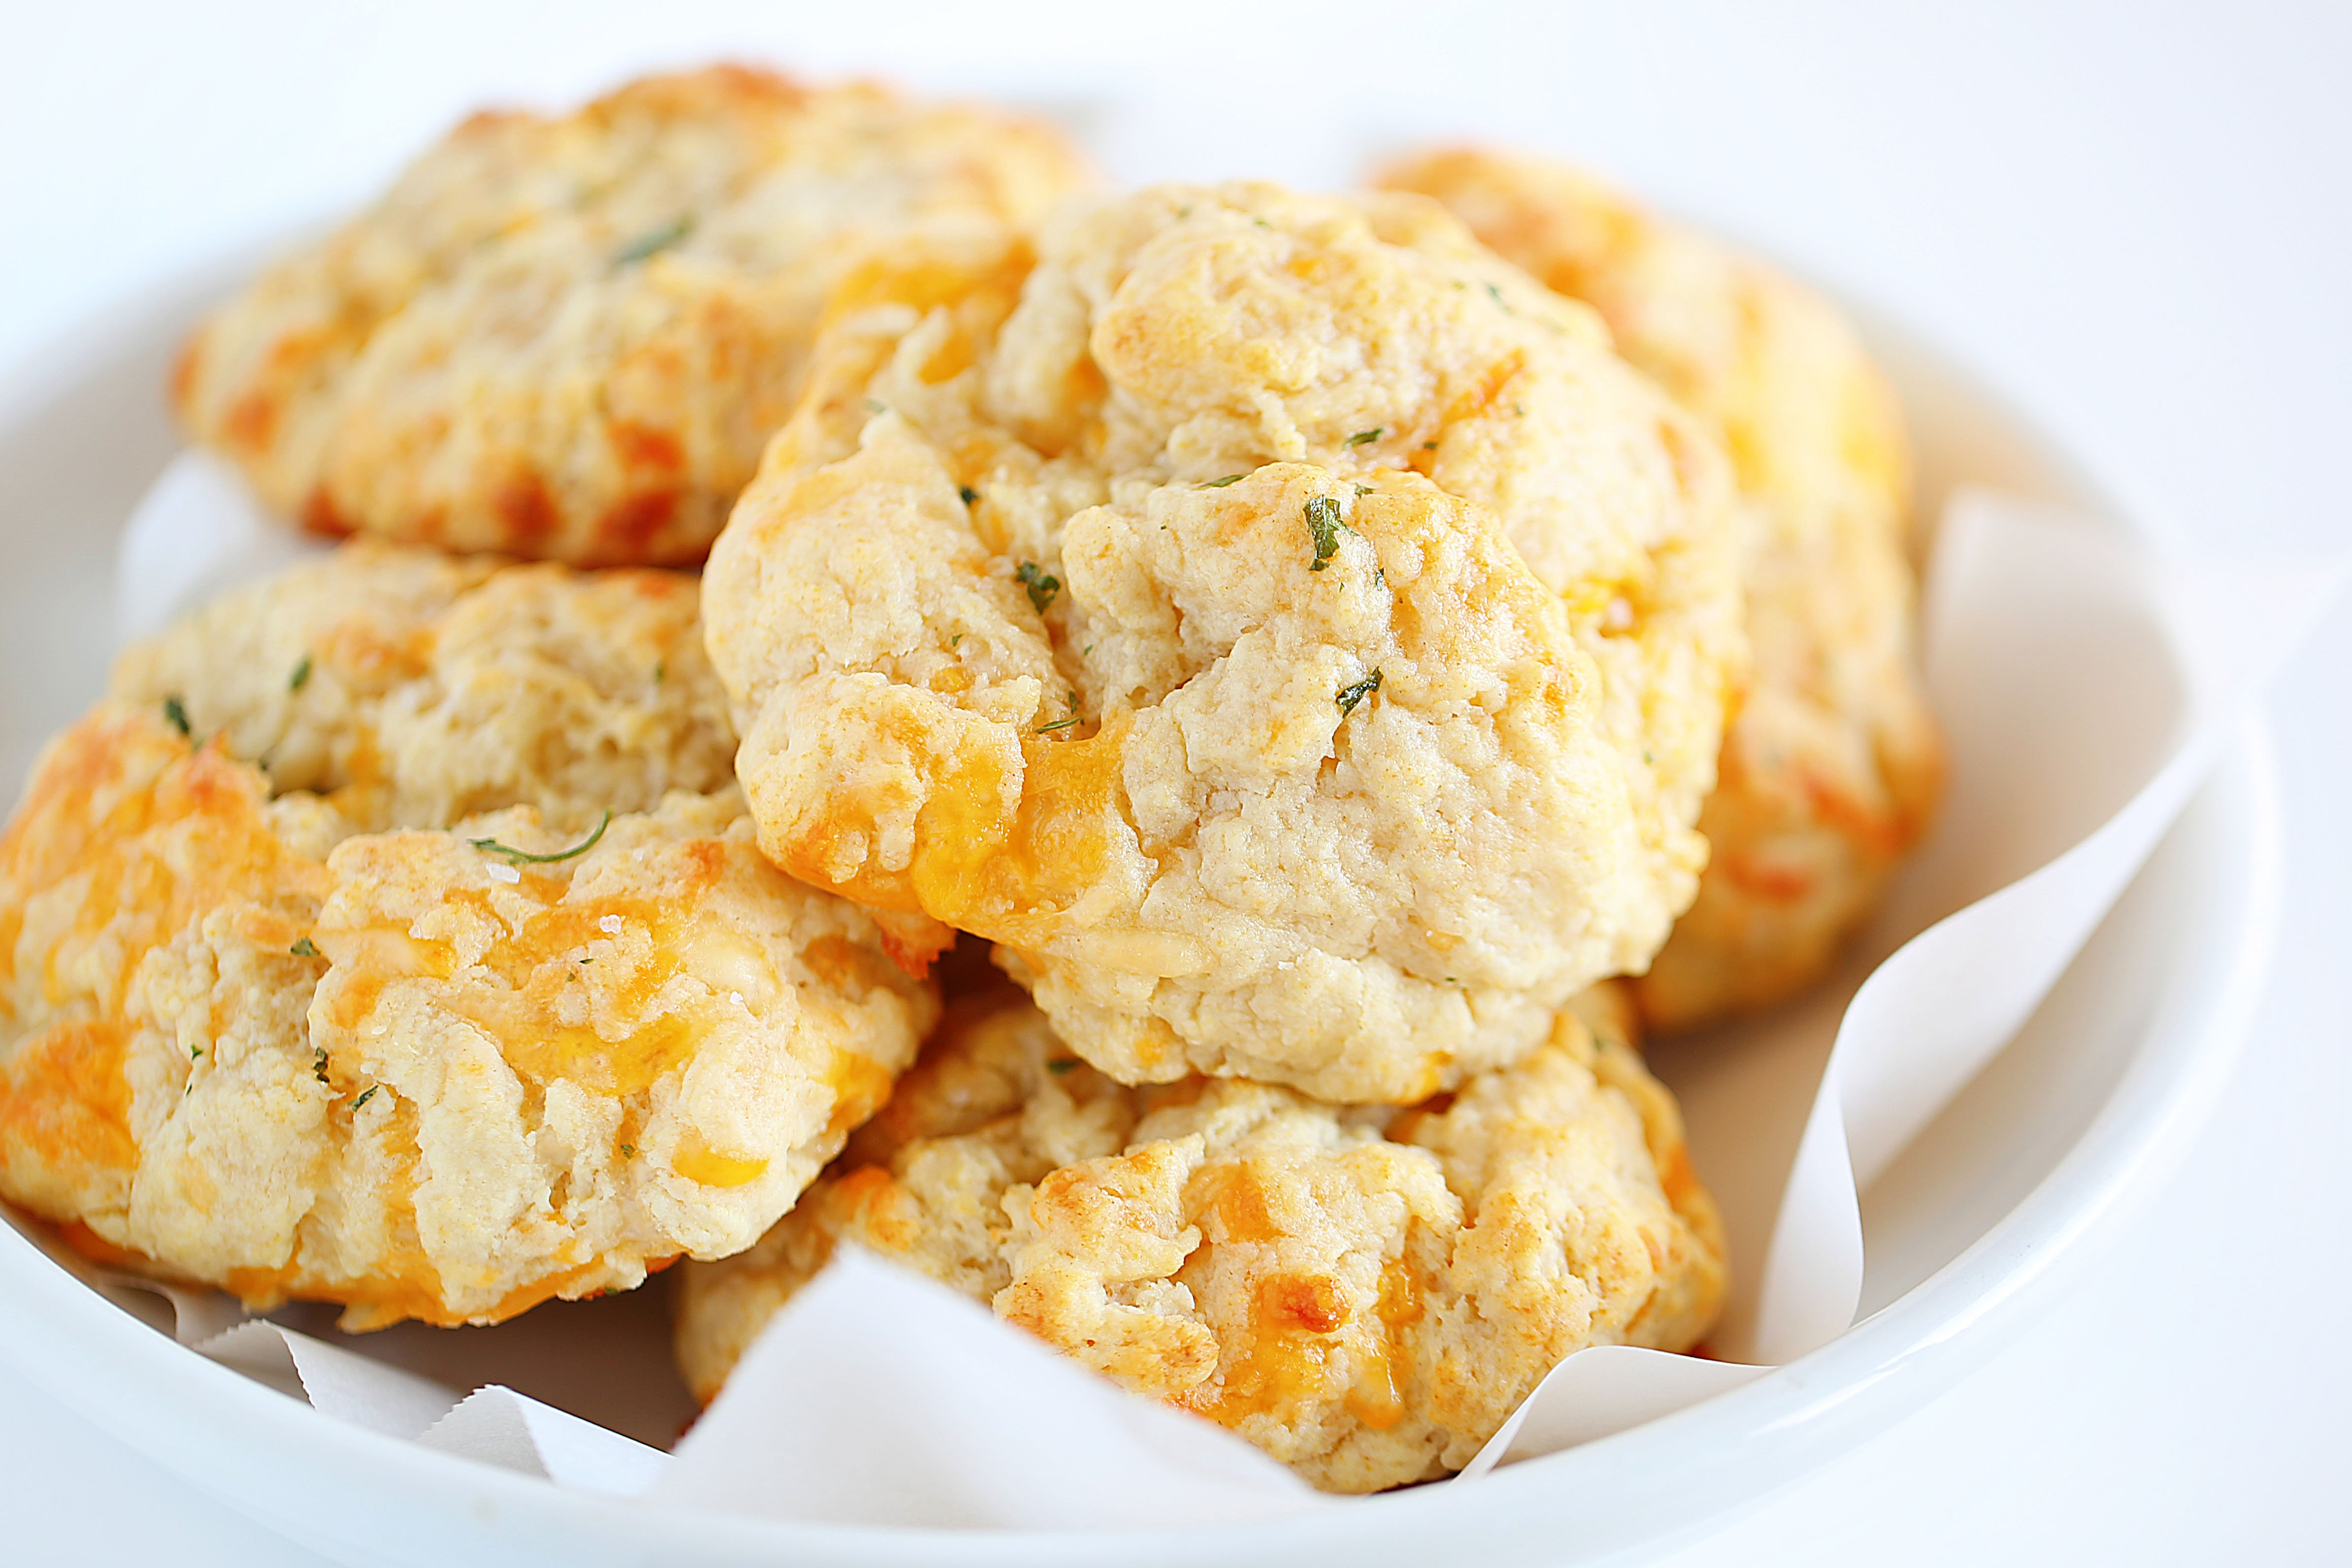 Bowl of Cheesy Garlic Biscuits